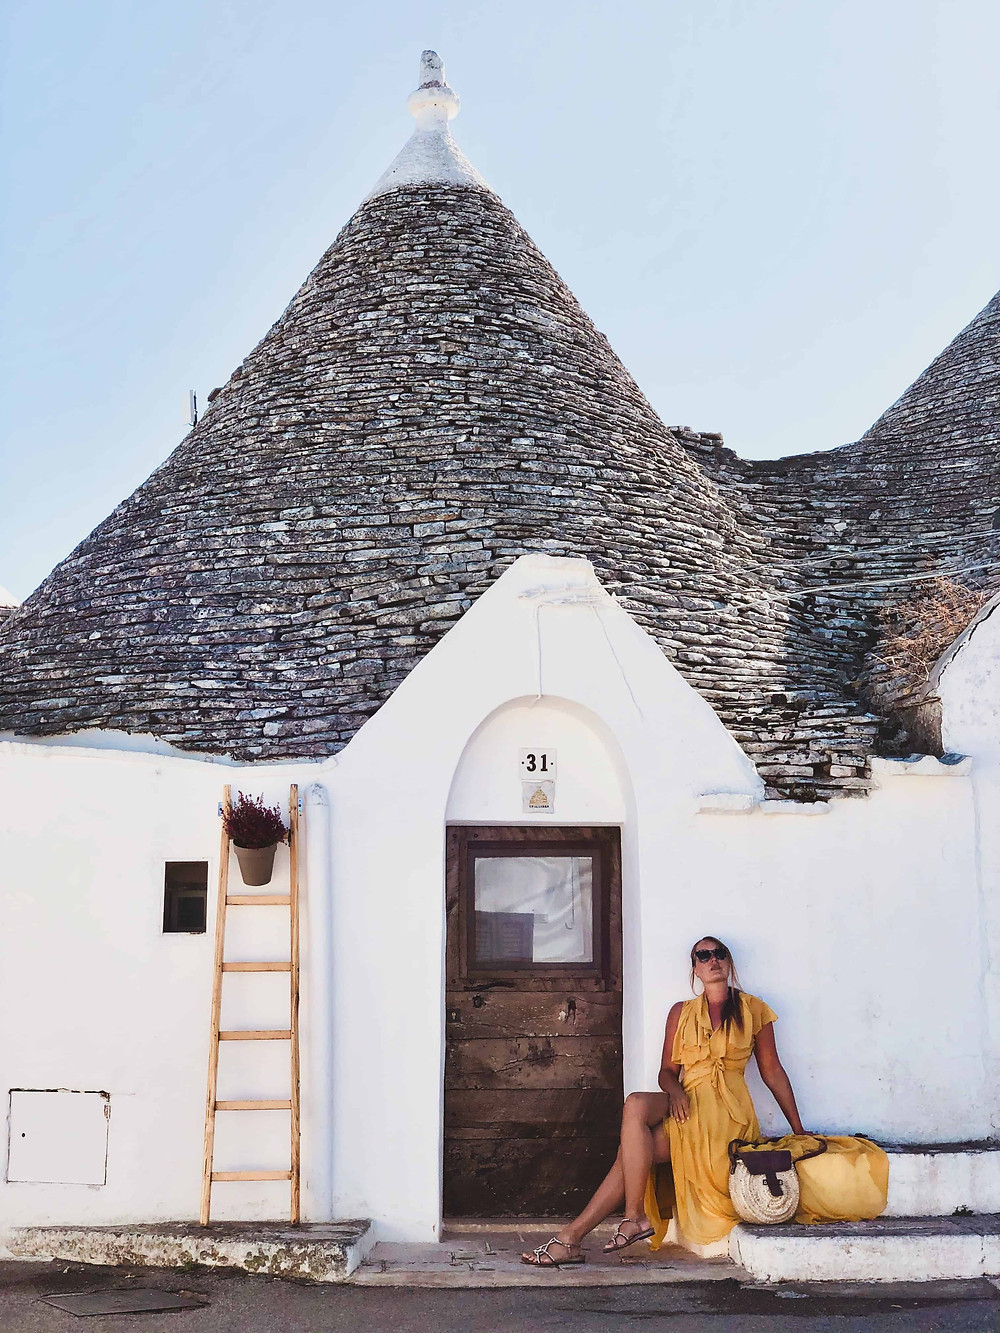 My last trip of 2020 to South Italy-Puglia